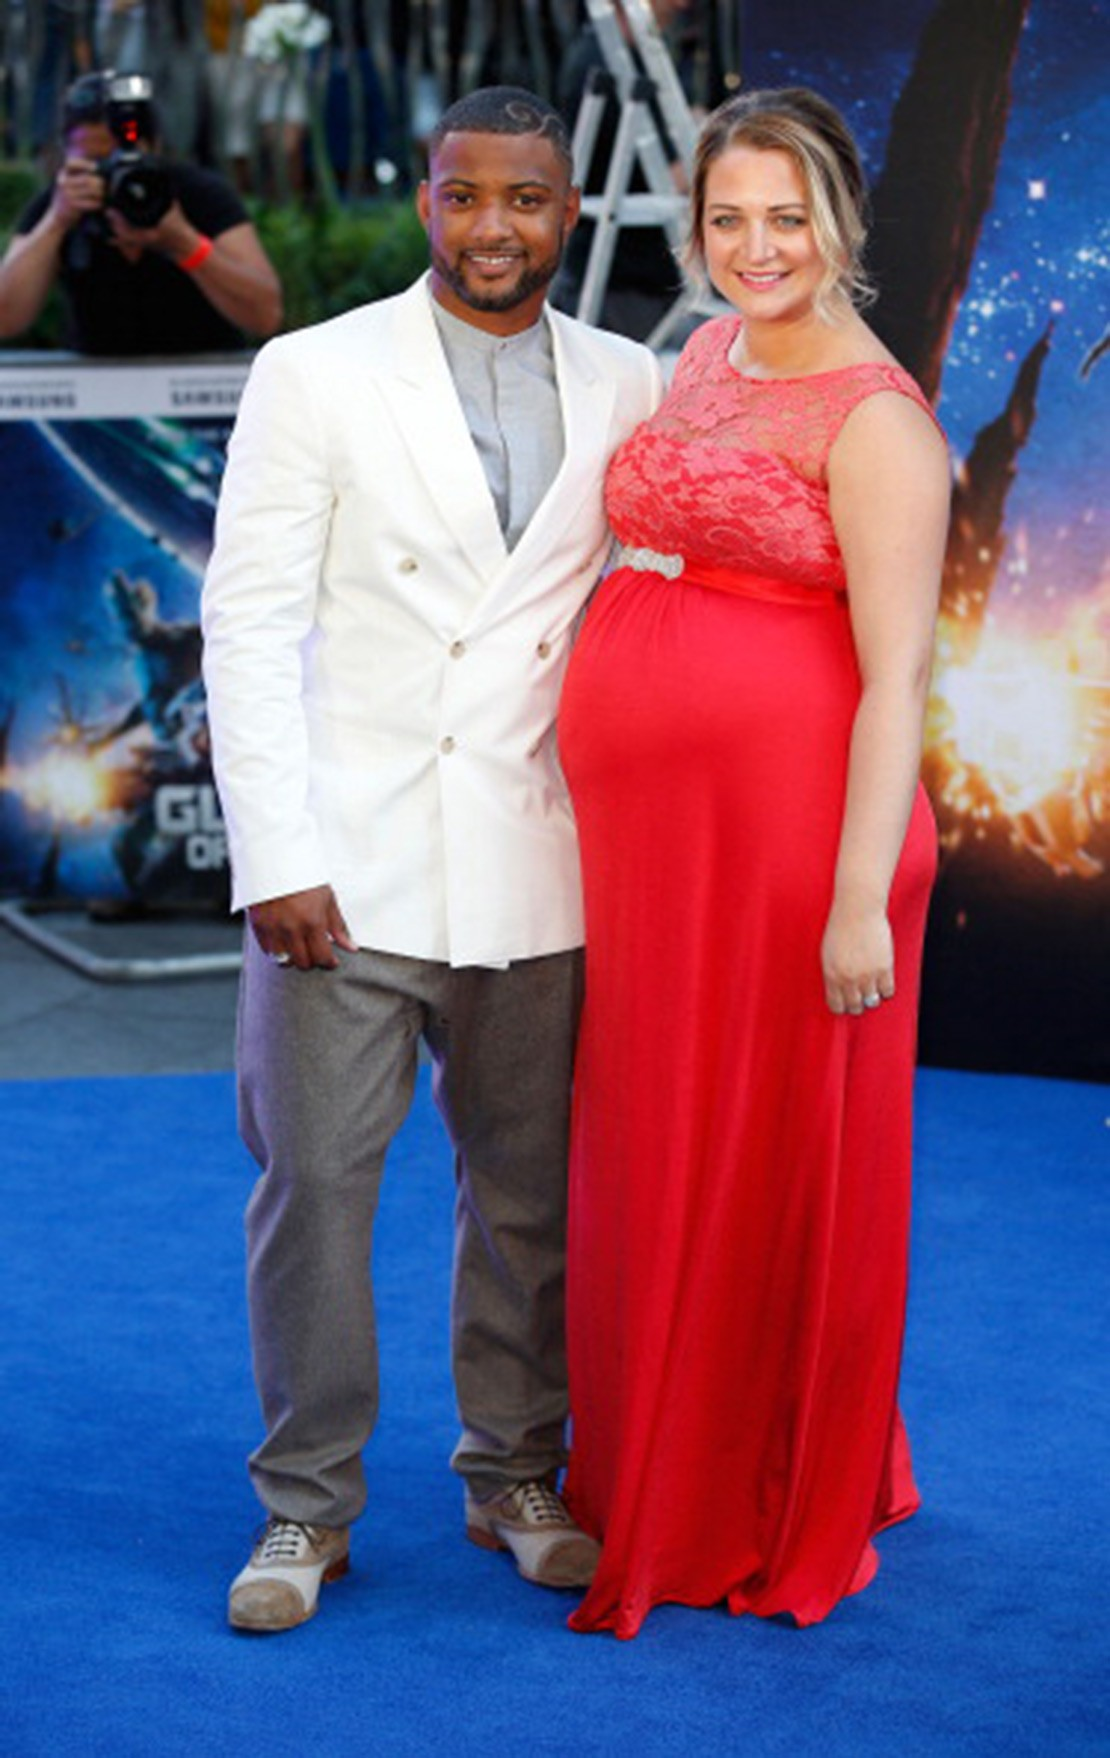 jb-gills-pregnant-wife-chloe-rocks-stunning-maternity-dress_58770